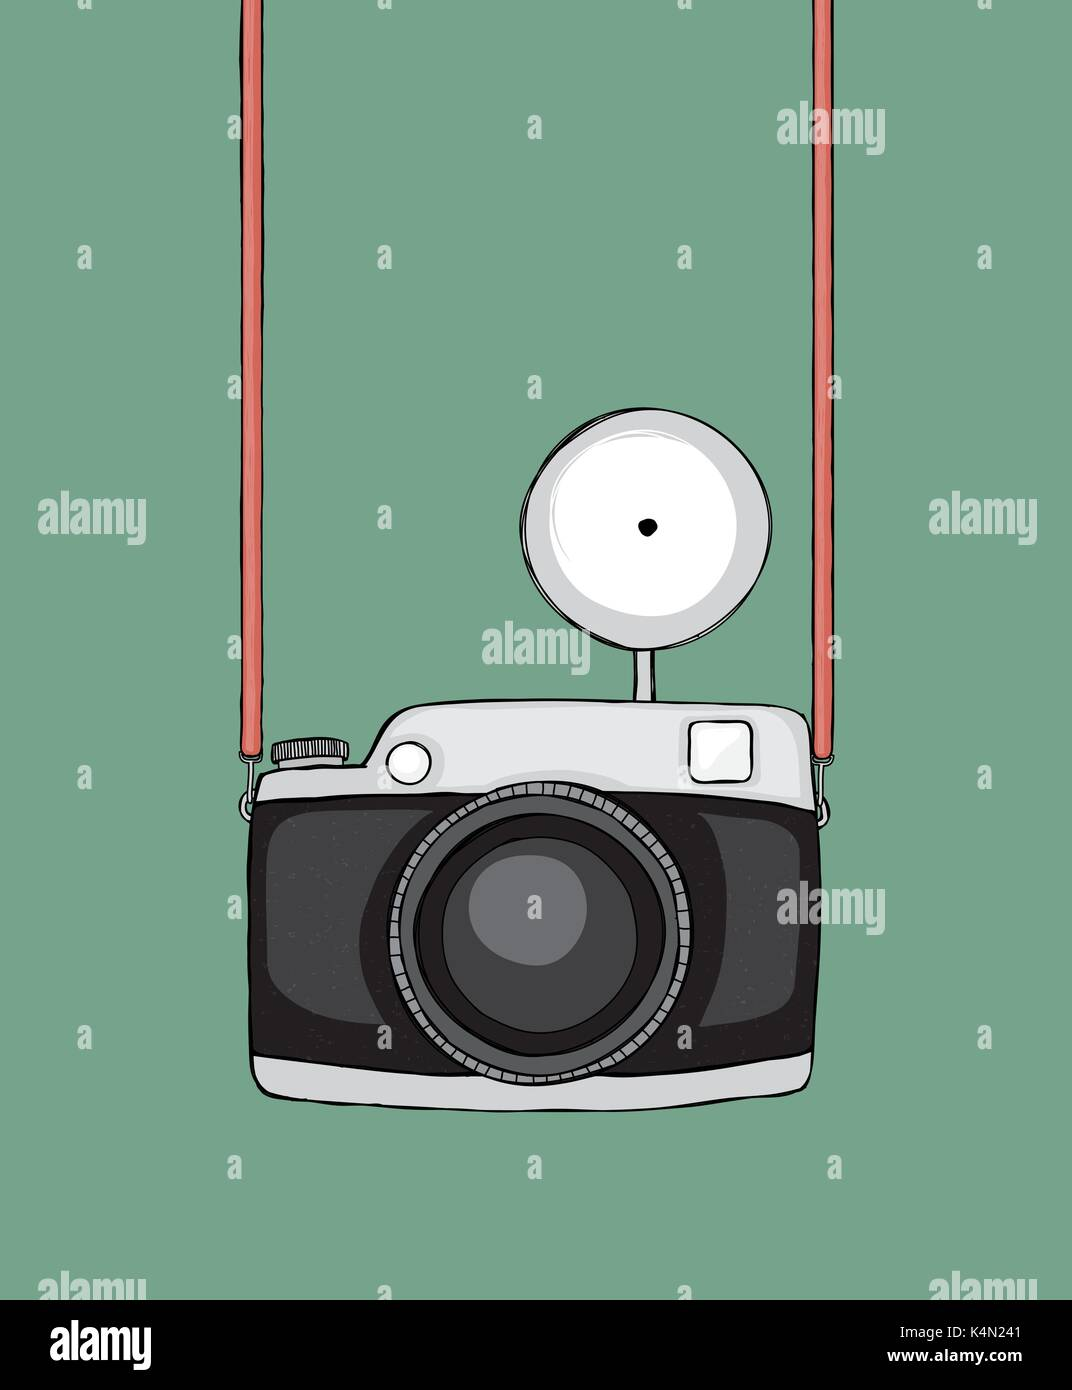 Hand Drawn Sketchy Retro Camera Strap And Flash Can Be Easily Stock Vector Art Illustration Image 157814609